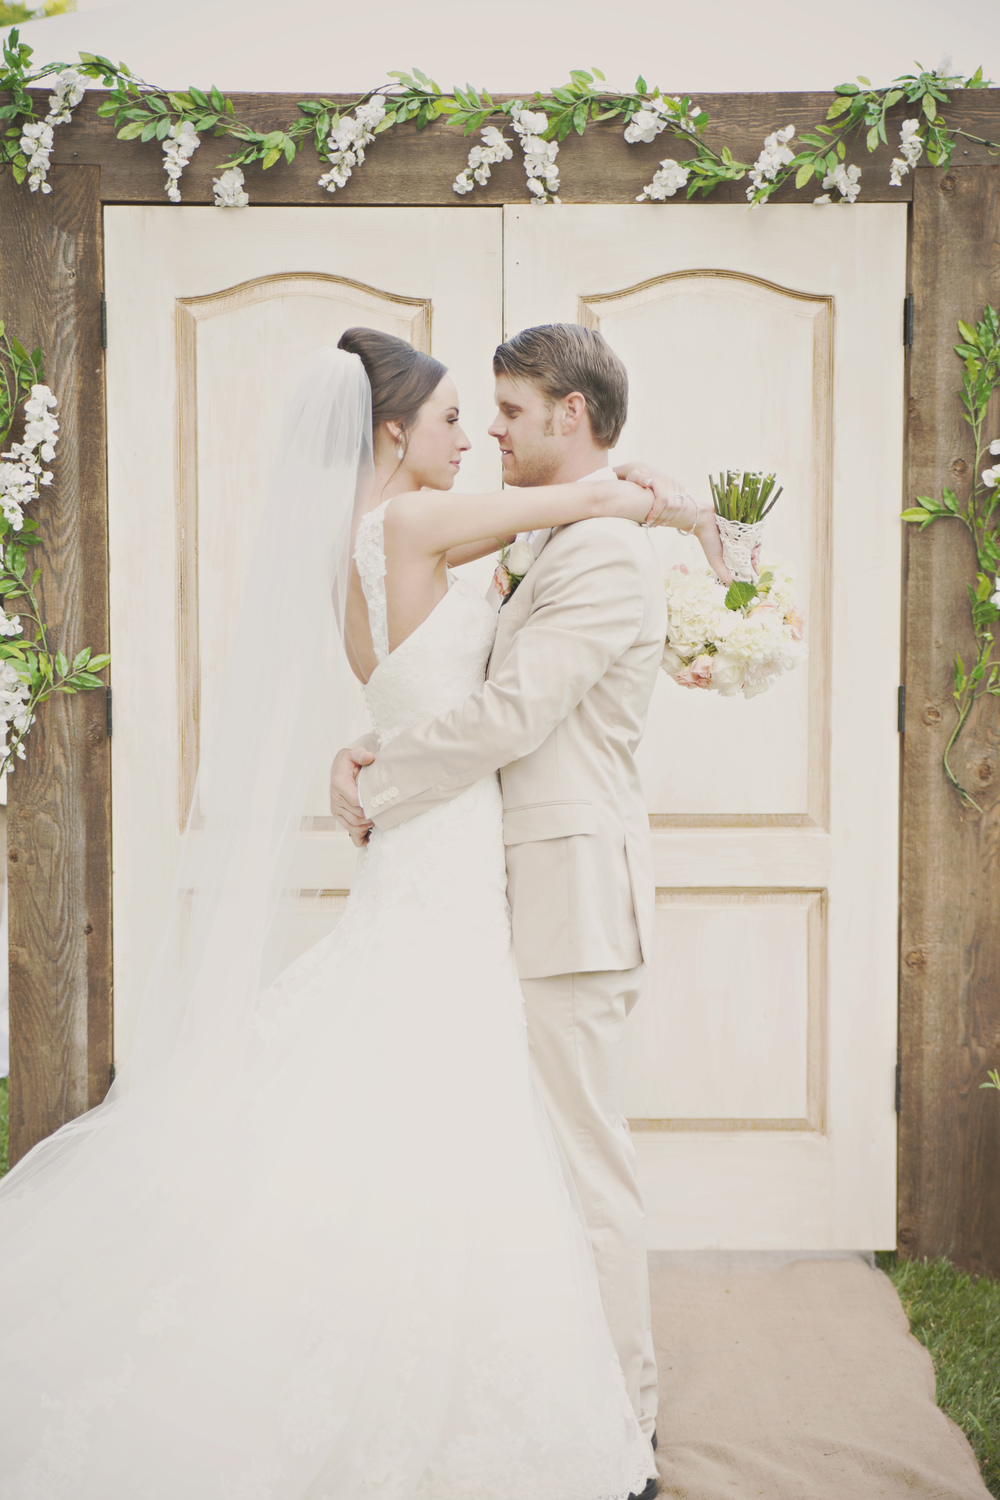 This bride had rustic doors for her outdoor ceremony entrance. They were just beautiful!